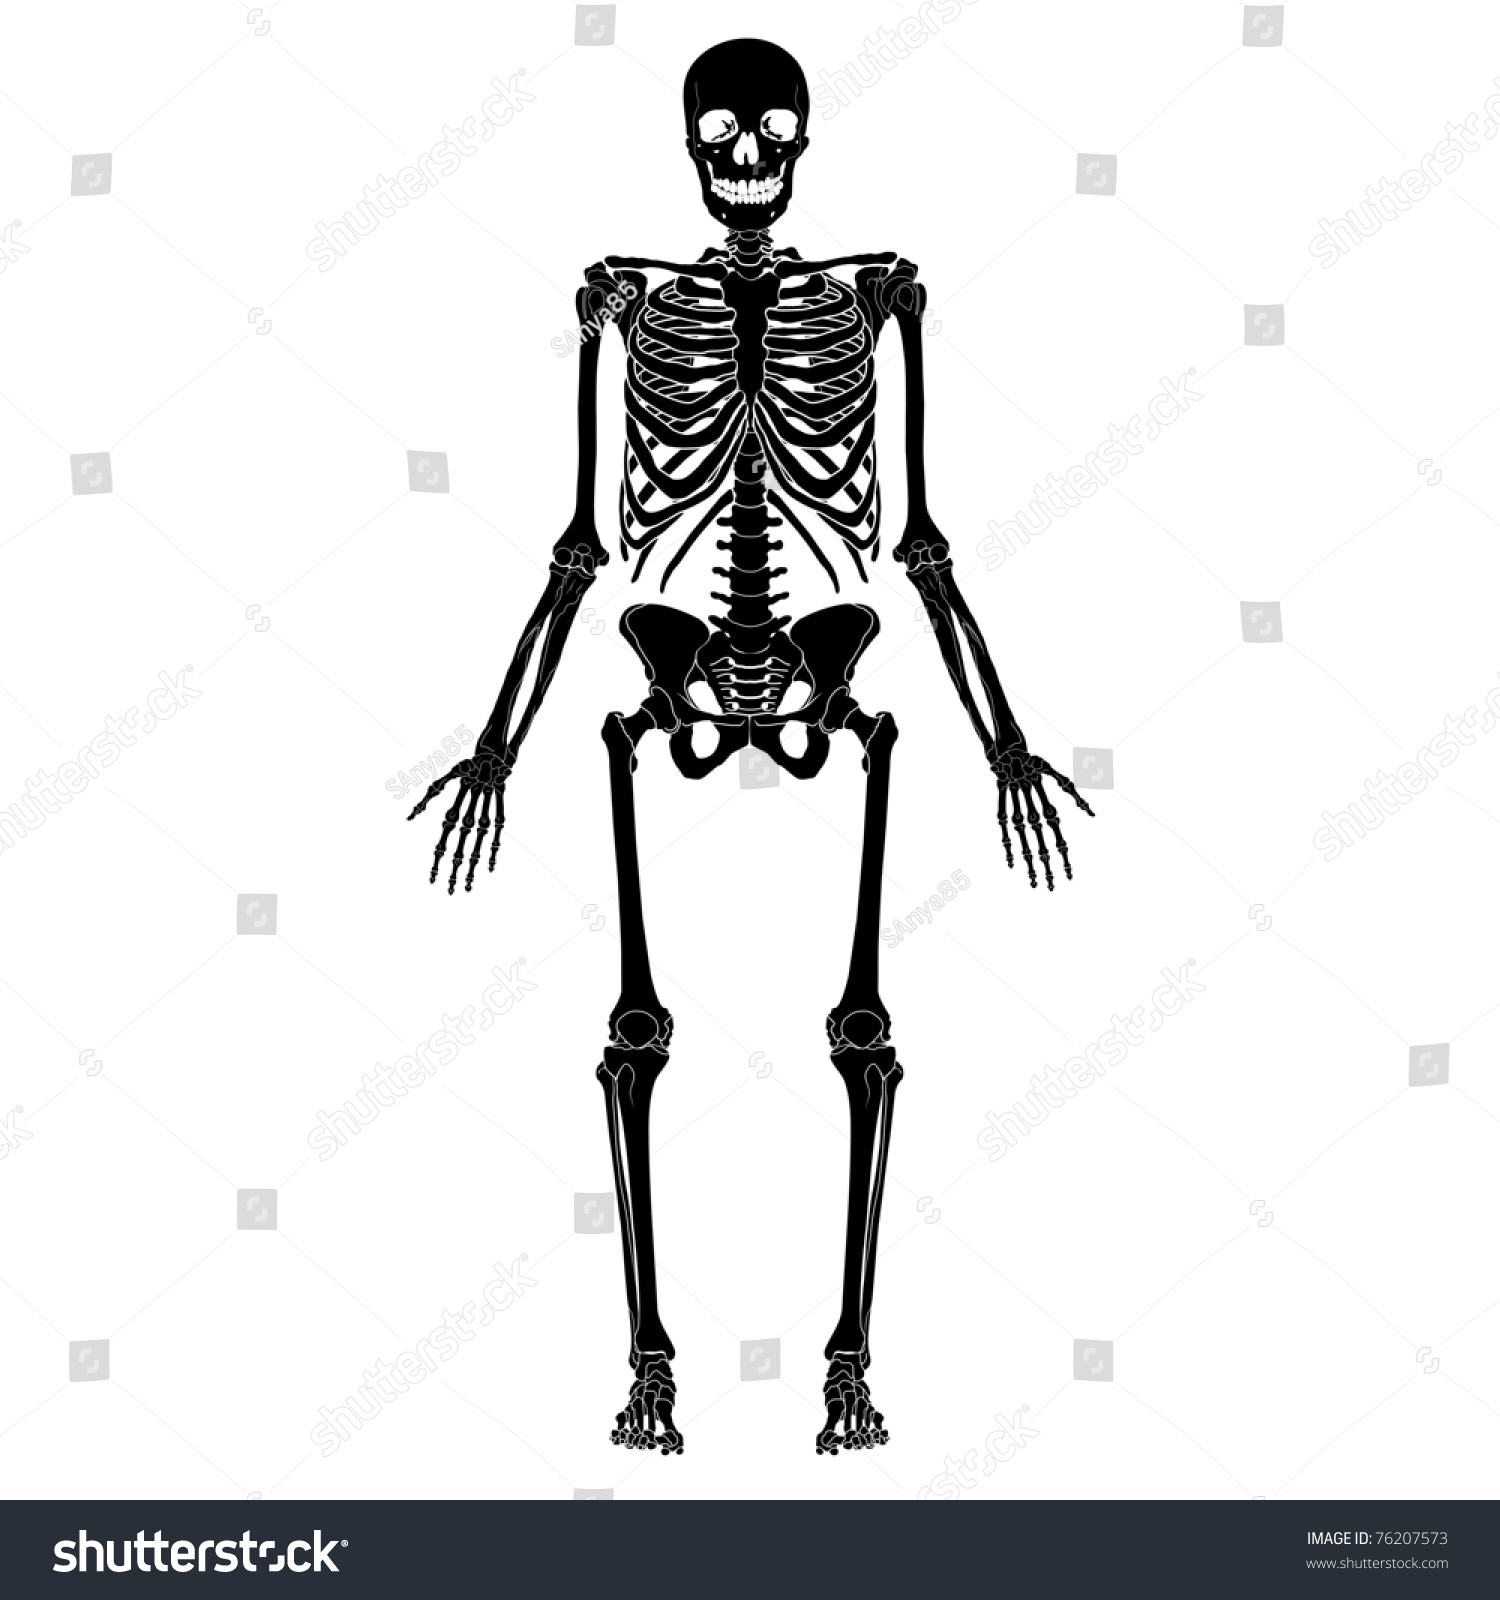 human skeleton eps 10 stock vector 76207573 - shutterstock, Skeleton